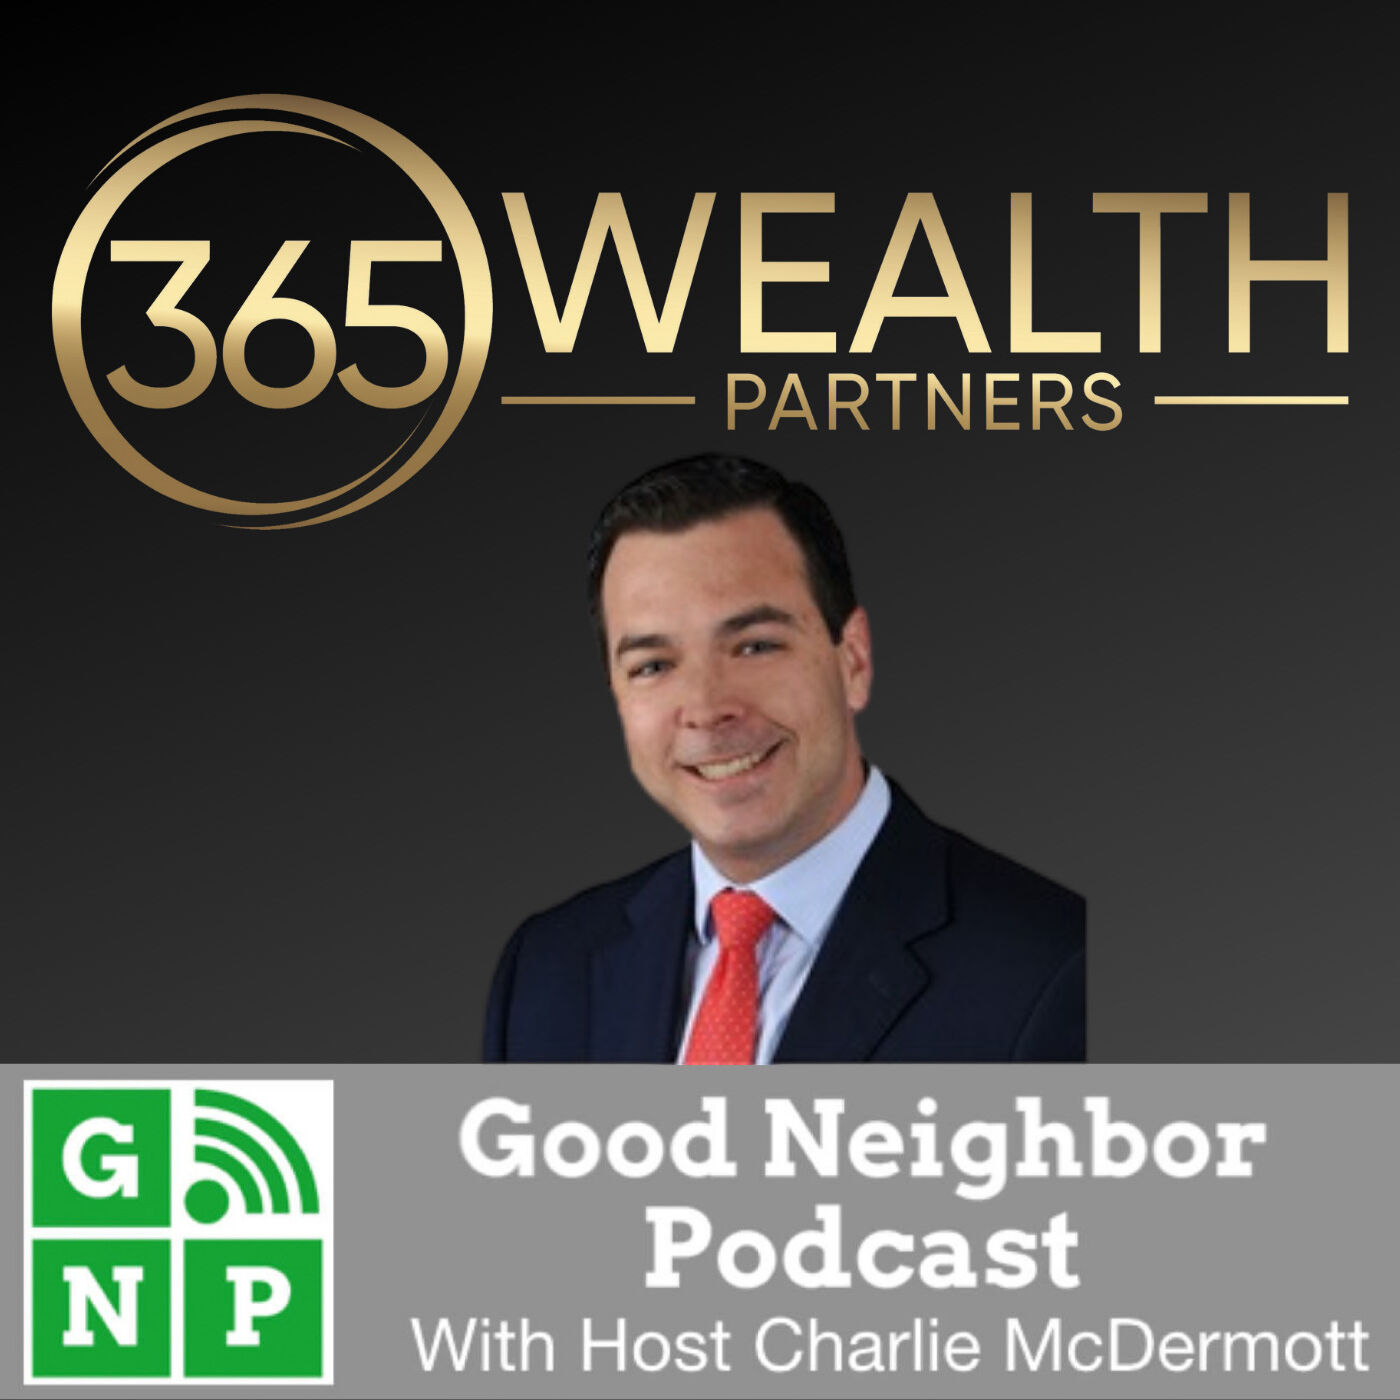 EP #531: 365 Wealth Partners with Breandan Kelly